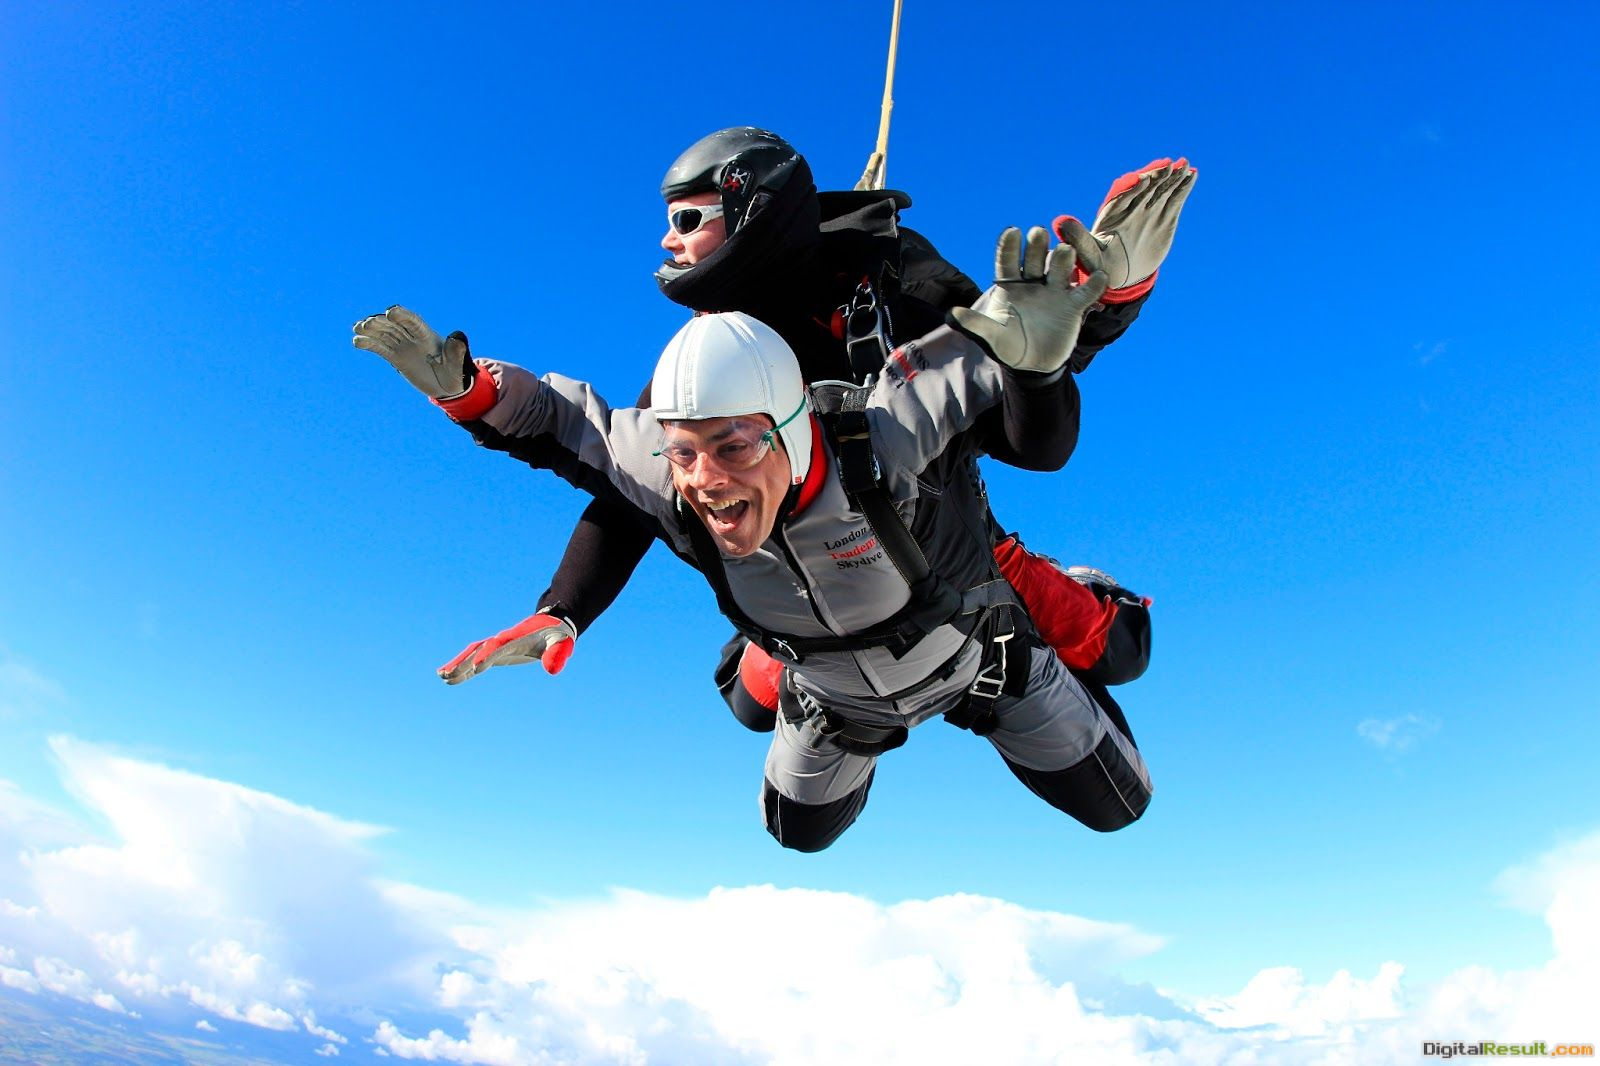 Skydiving Wallpaper 1813